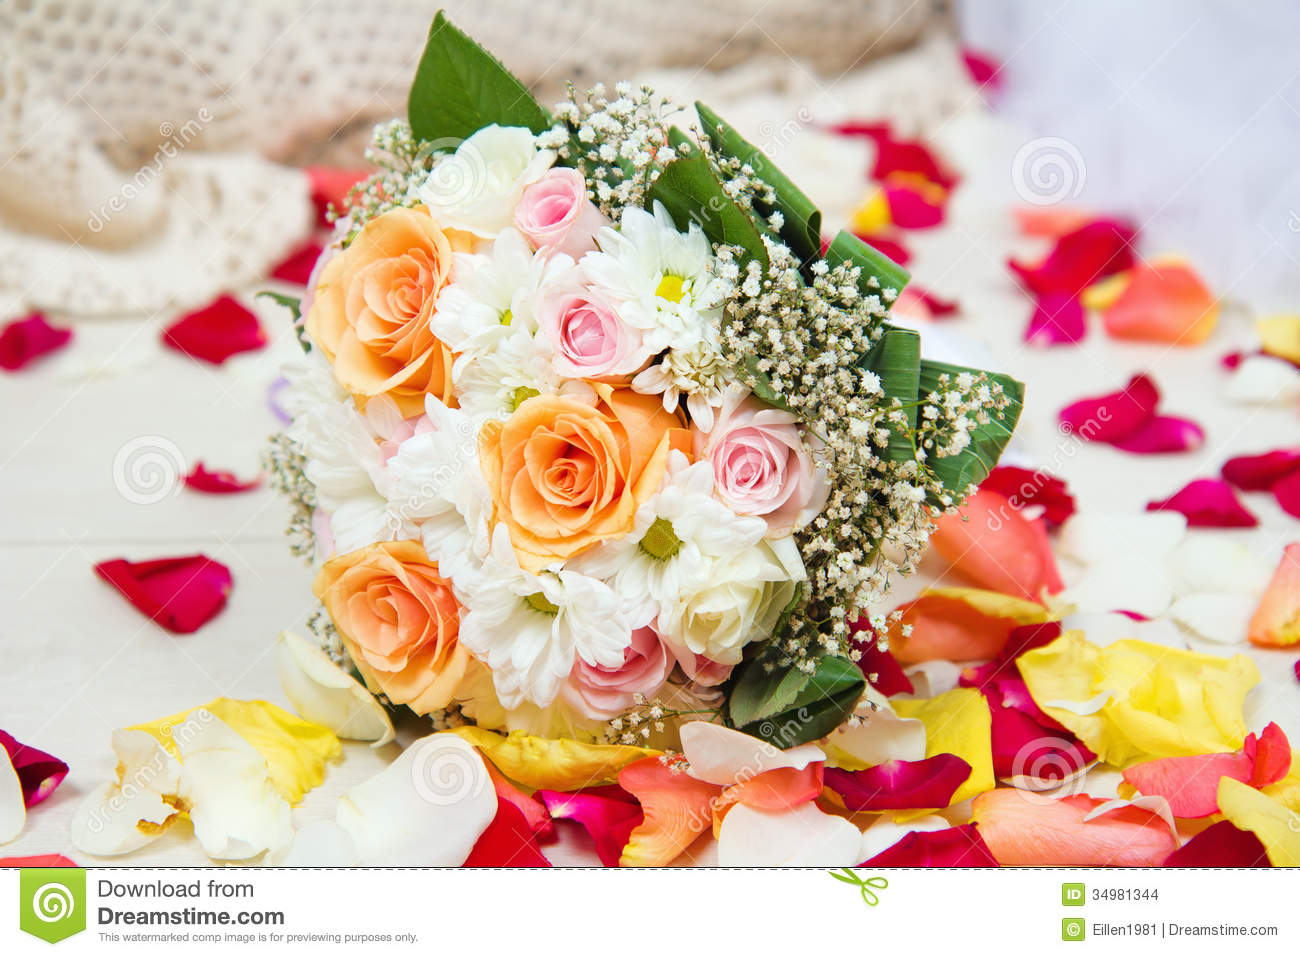 Bridal wedding bouquet of flowers with rose petals stock photo bridal wedding bouquet of flowers with rose petals izmirmasajfo